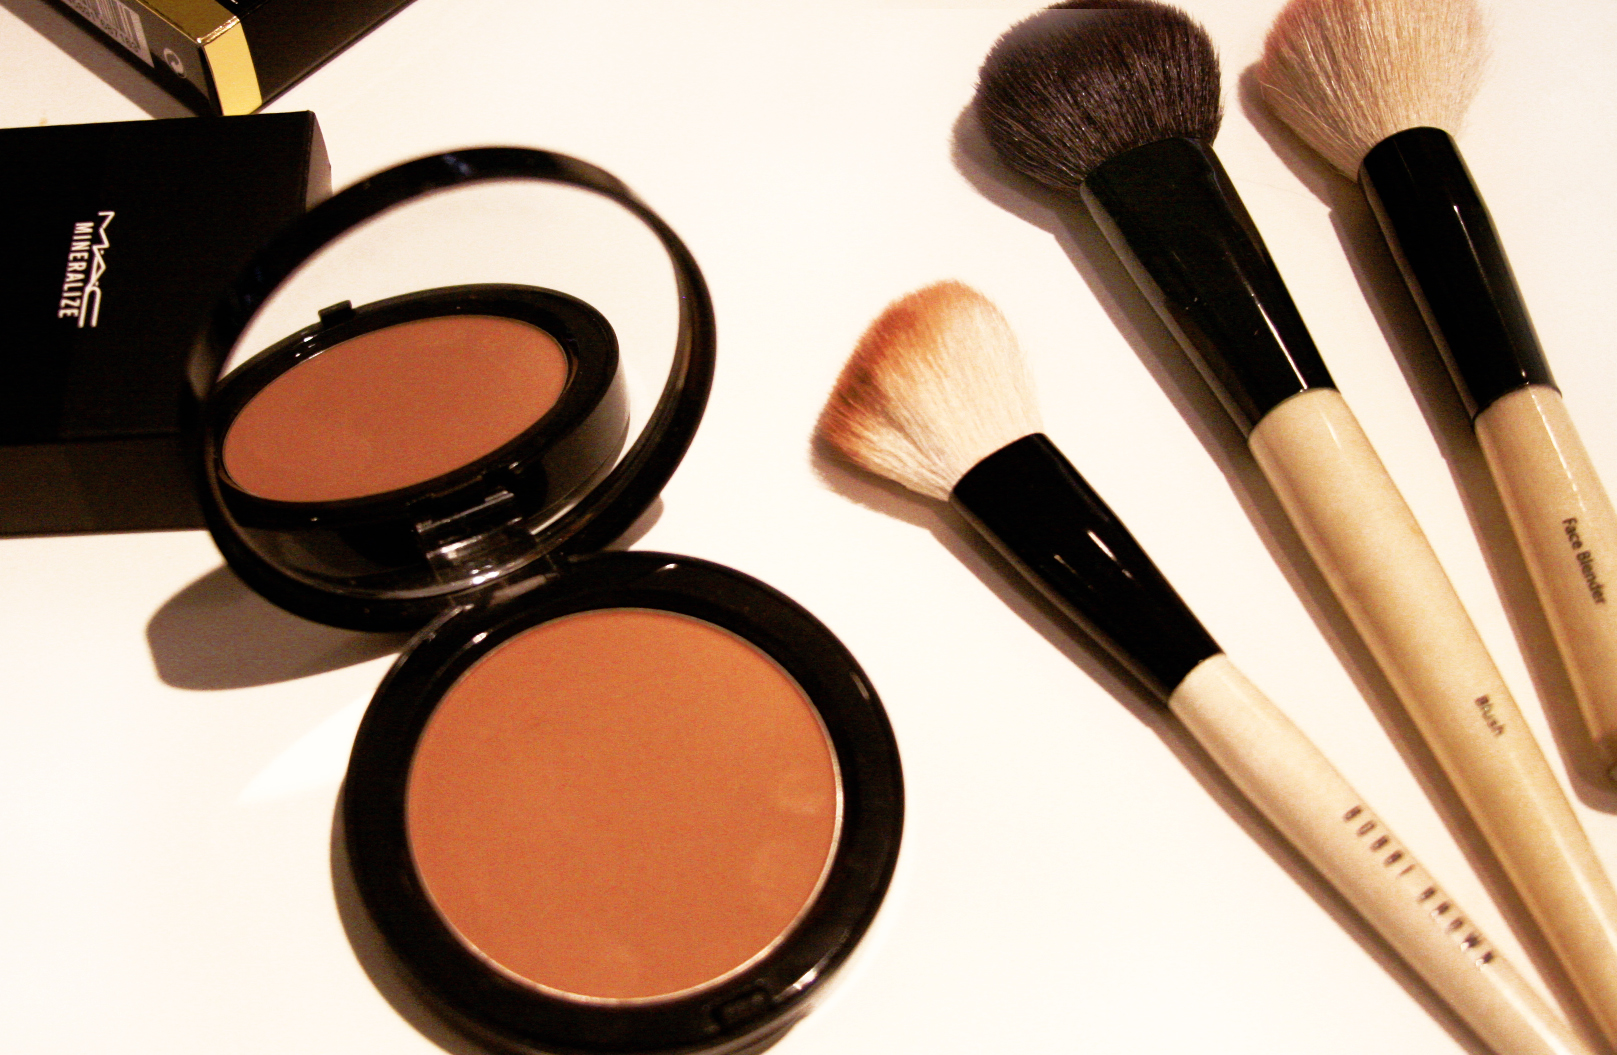 Blush, Bronzer, Highlighter: Do's and Don'ts